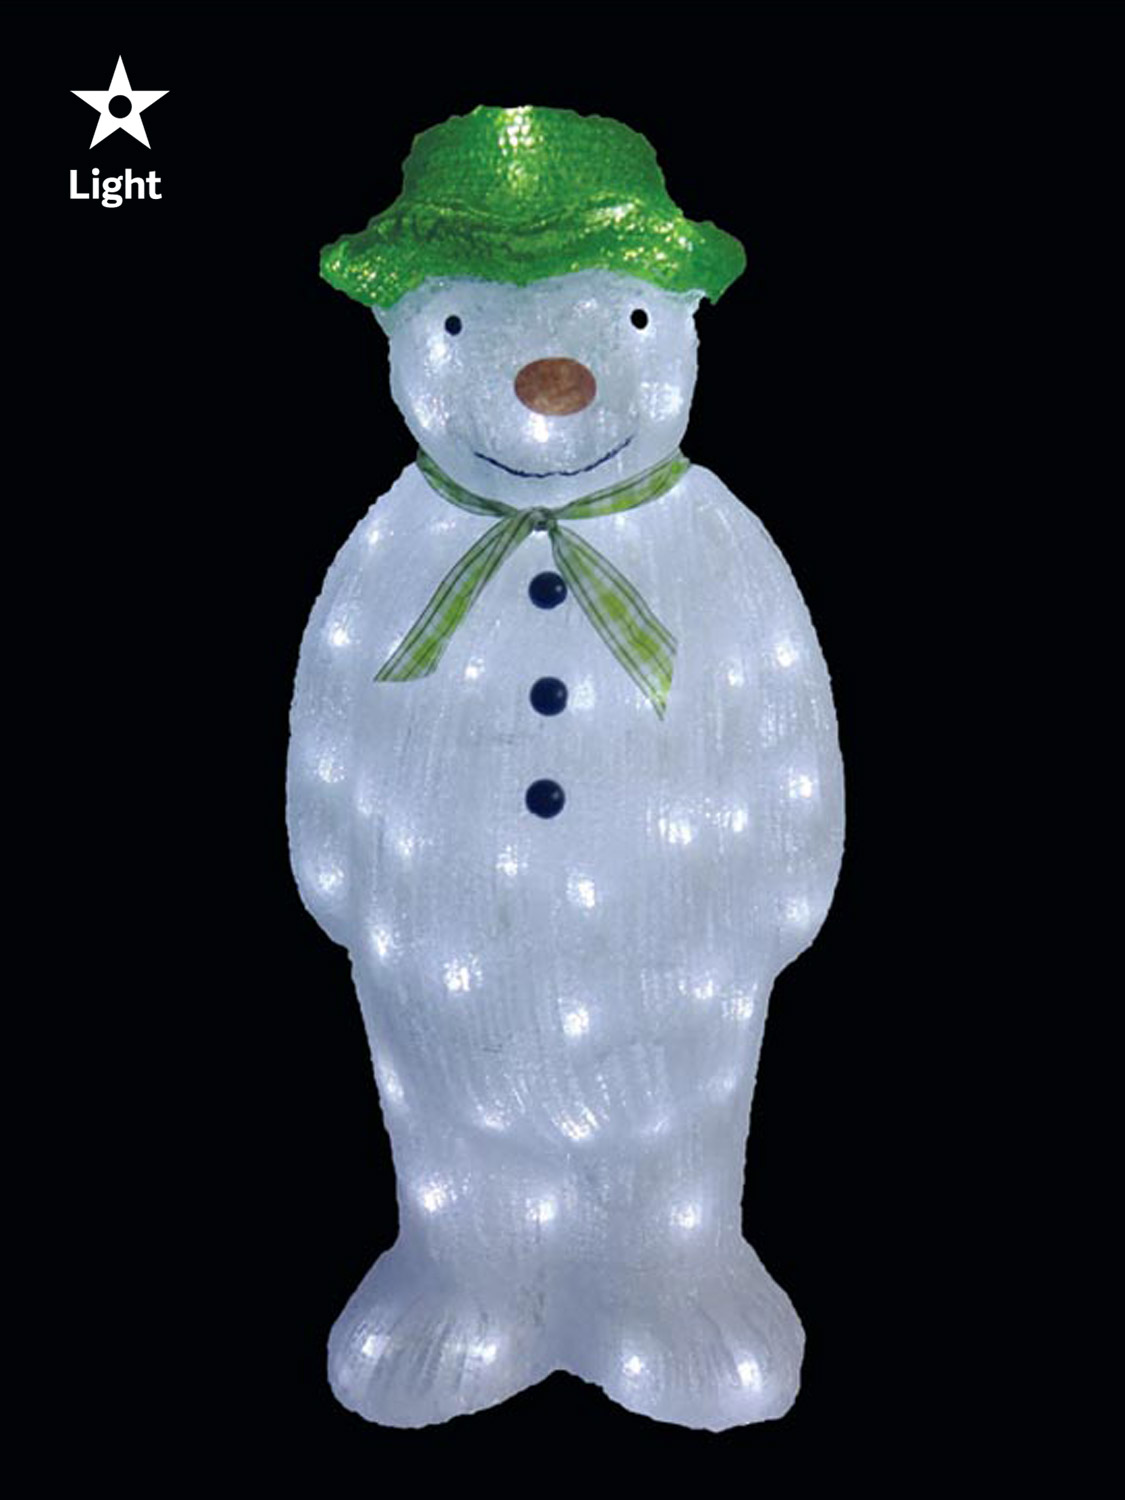 The snowman snowdog acrylic light up led outdoor garden for Outdoor light up ornaments